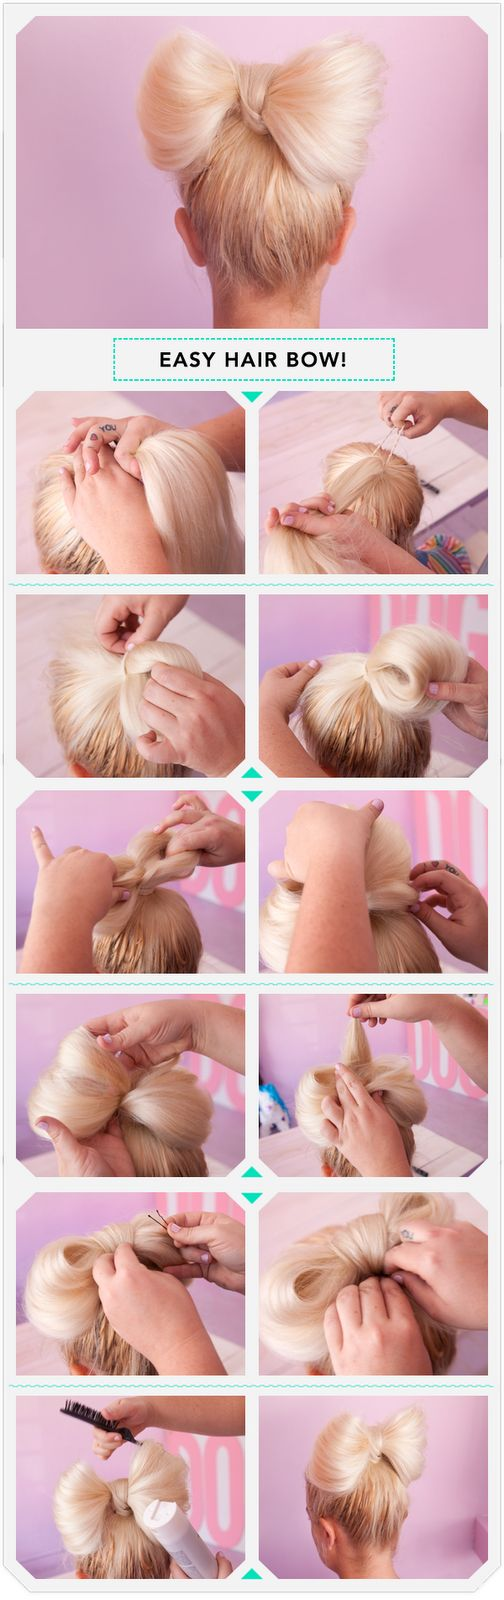 Beauty Tutorials: How to style a simple and easy hair bow